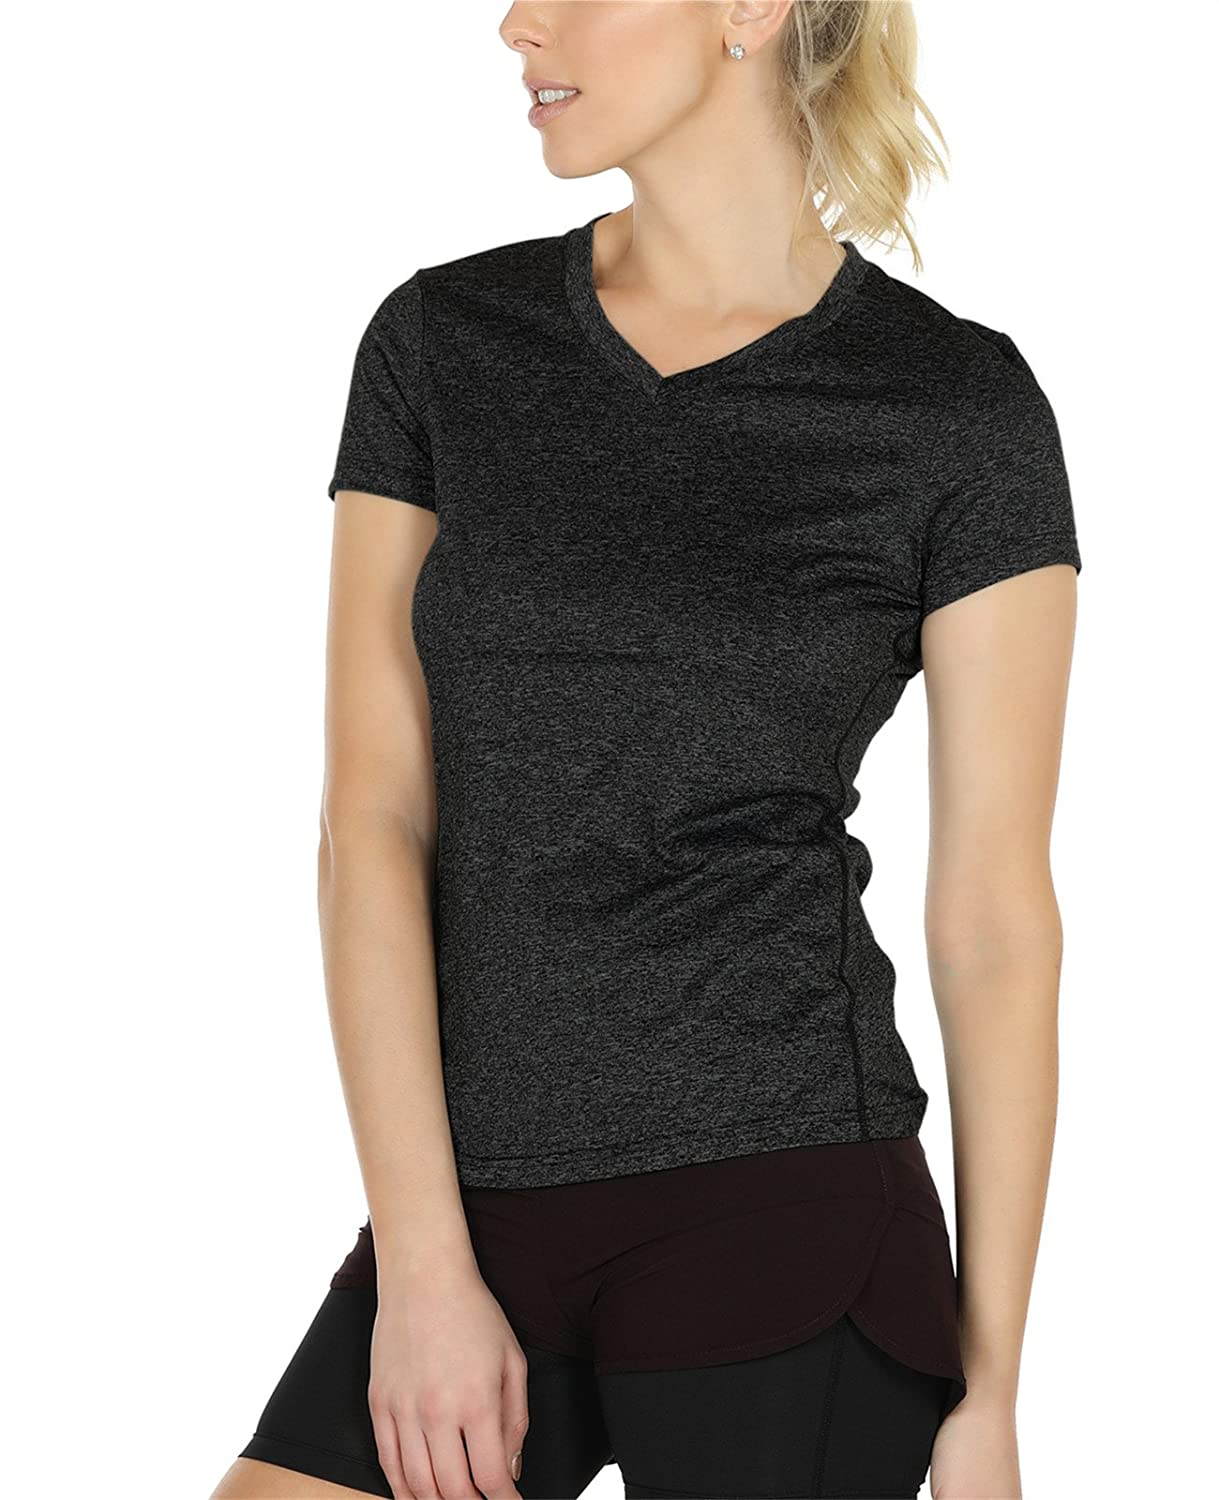 icyzone Workout Shirts Yoga Tops Activewear V-Neck T-Shirts for Women Running Fitness Sports Short Sleeve Tees Pack of 3